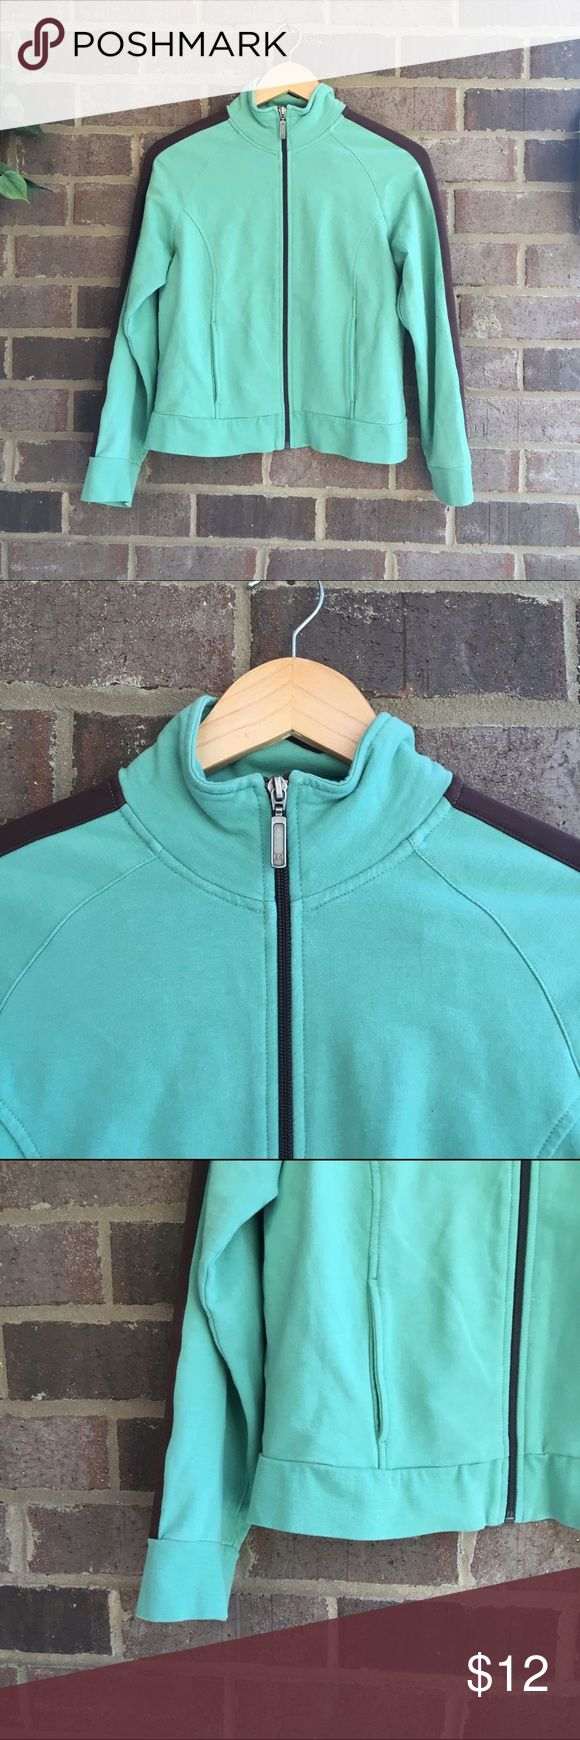 💋BOGO Green Zip Up Sweatshirt This cozy zip up sweatshirt is made from a cotton blend. Green and brown color block makes this a universally flattering piece. 50045🏹 Kim Rogers Jackets & Coats